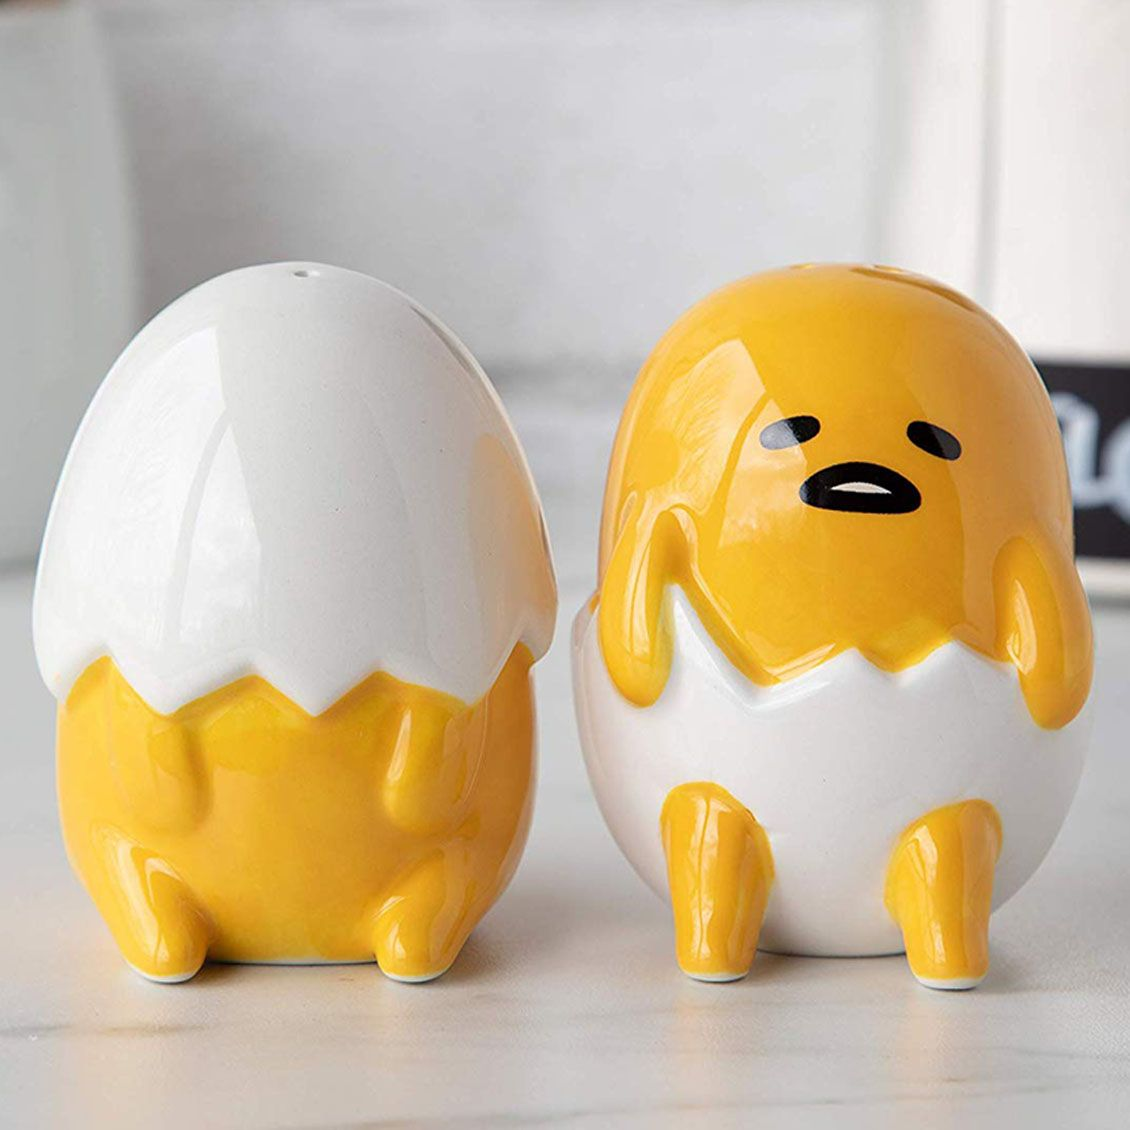 Sanrio GUDETAMA THE LAZY EGG SQUISHME SQUEEZE Toy SQUISHY Laying Down in Shell